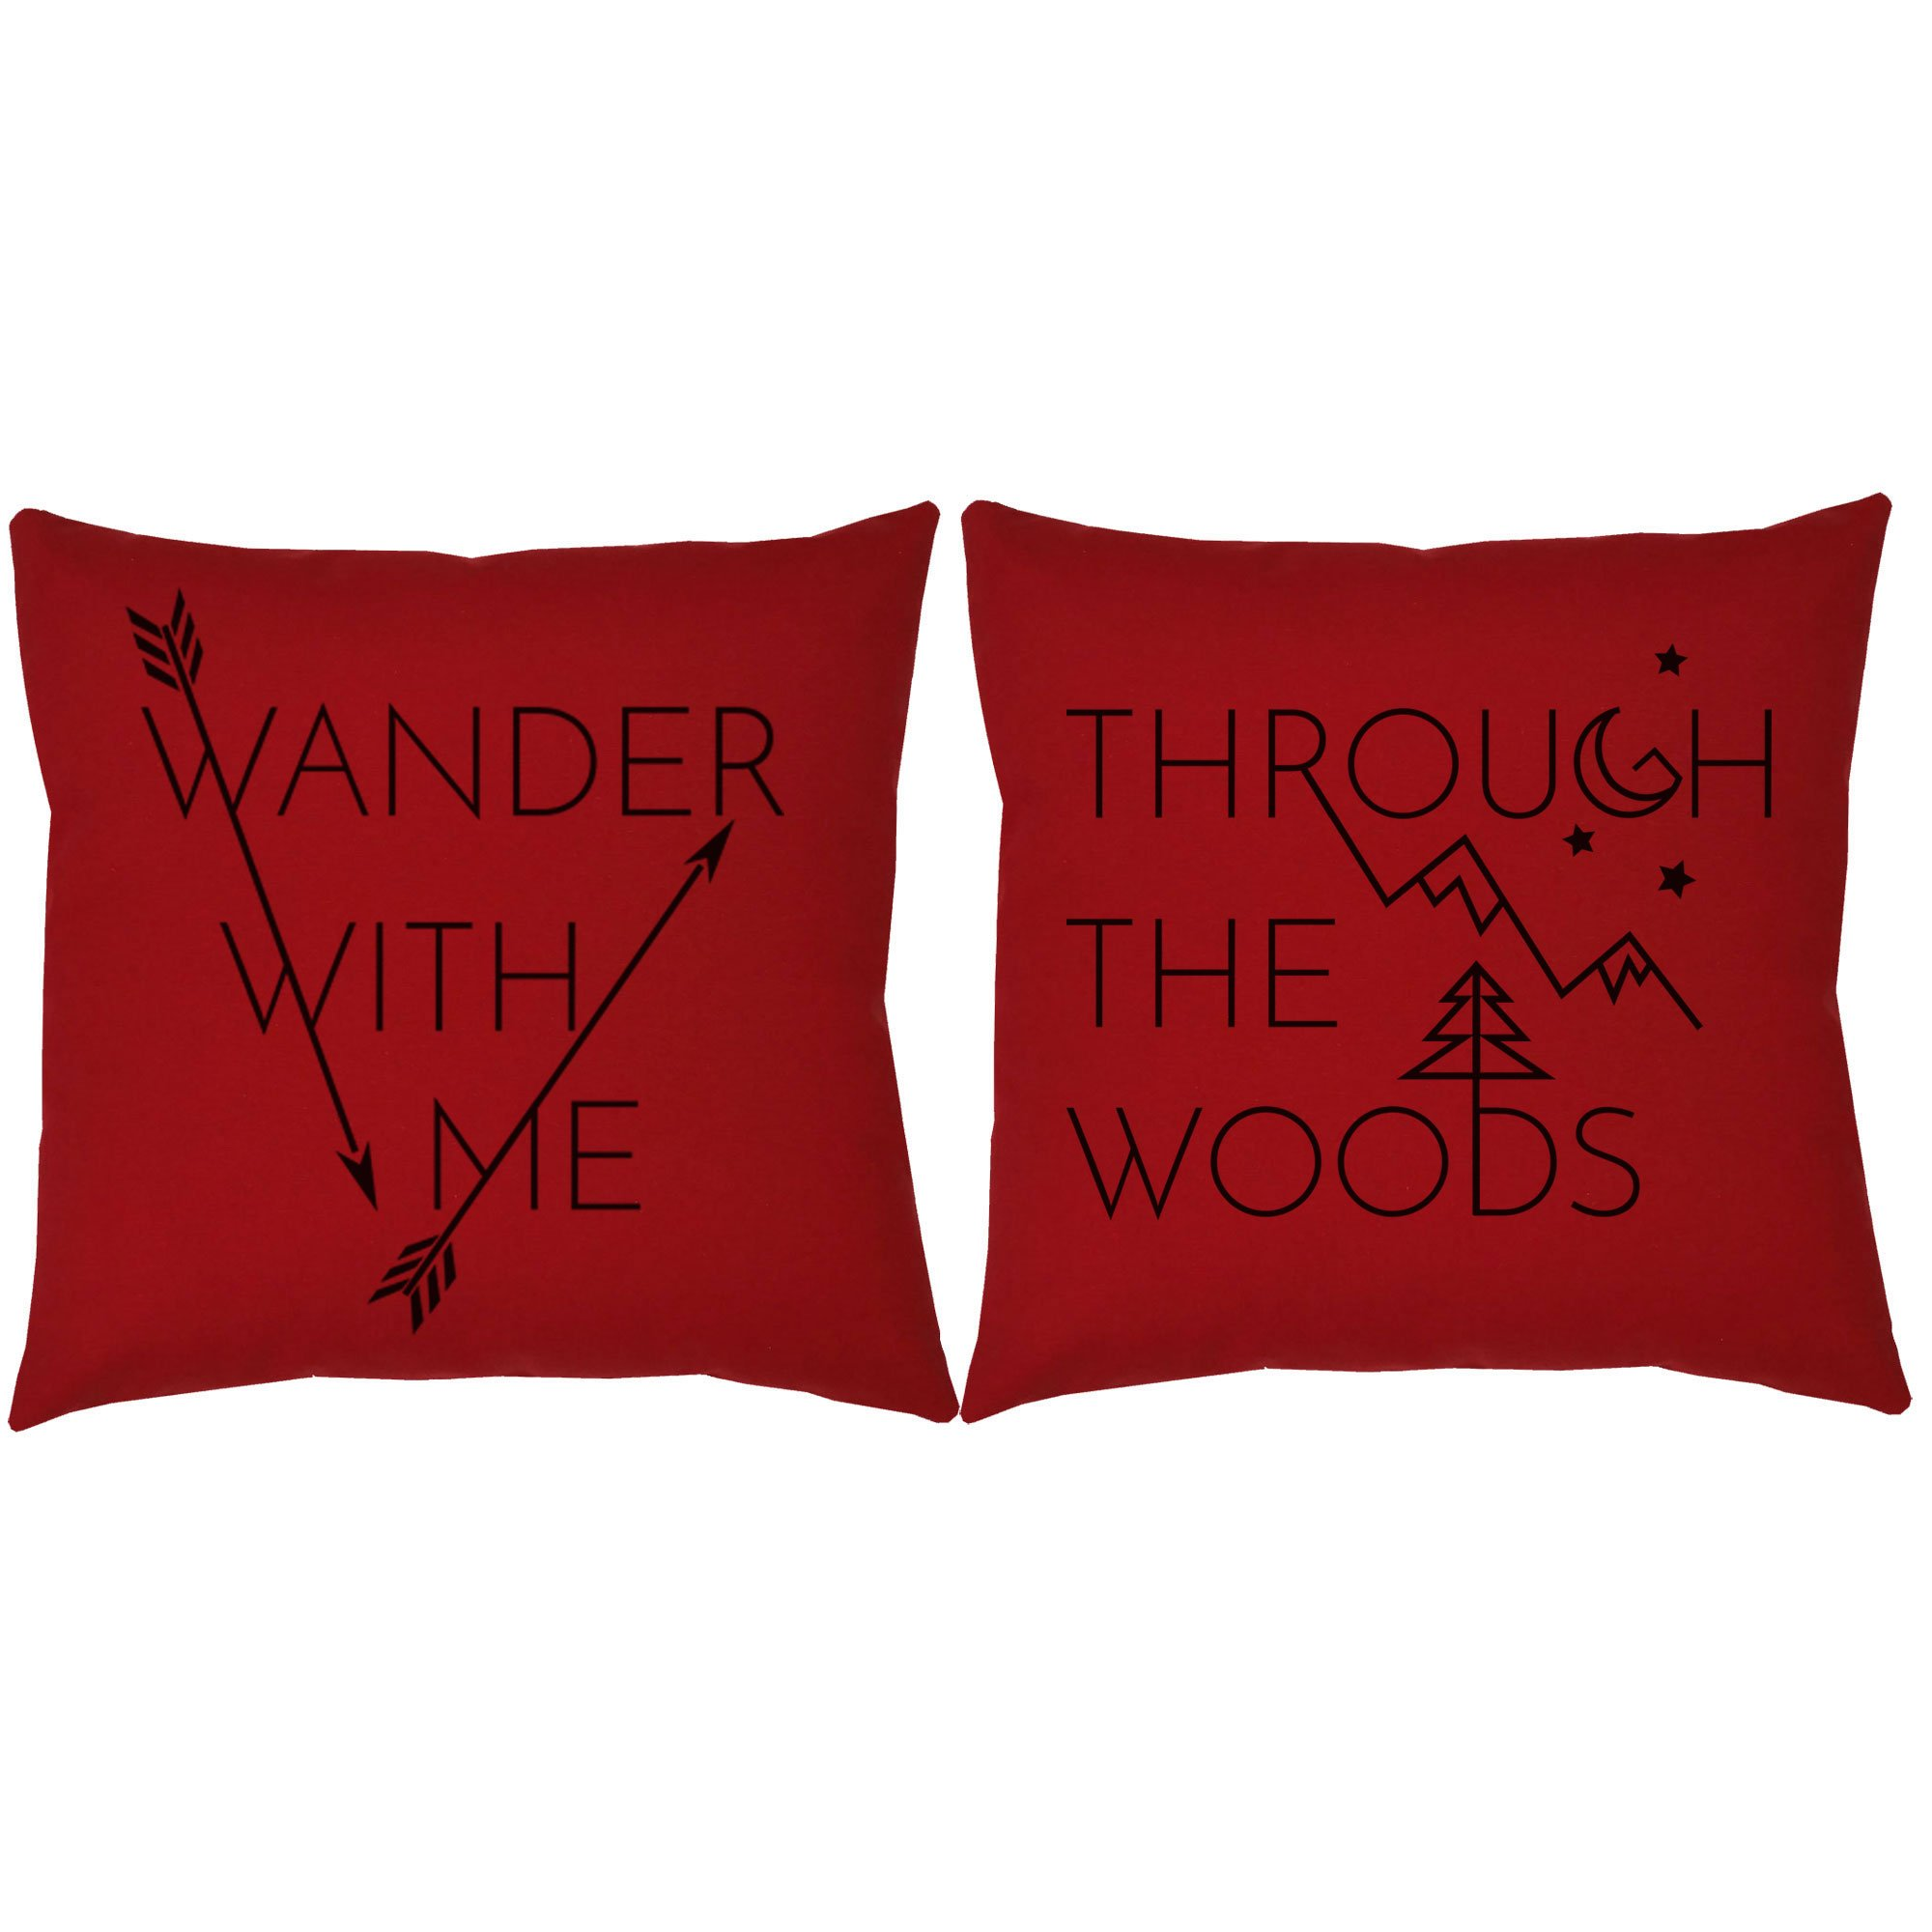 Set of 2 RoomCraft Wander With Me Through the Woods Throw Pillows 20x20 Square Red Indoor-Outdoor Cushions